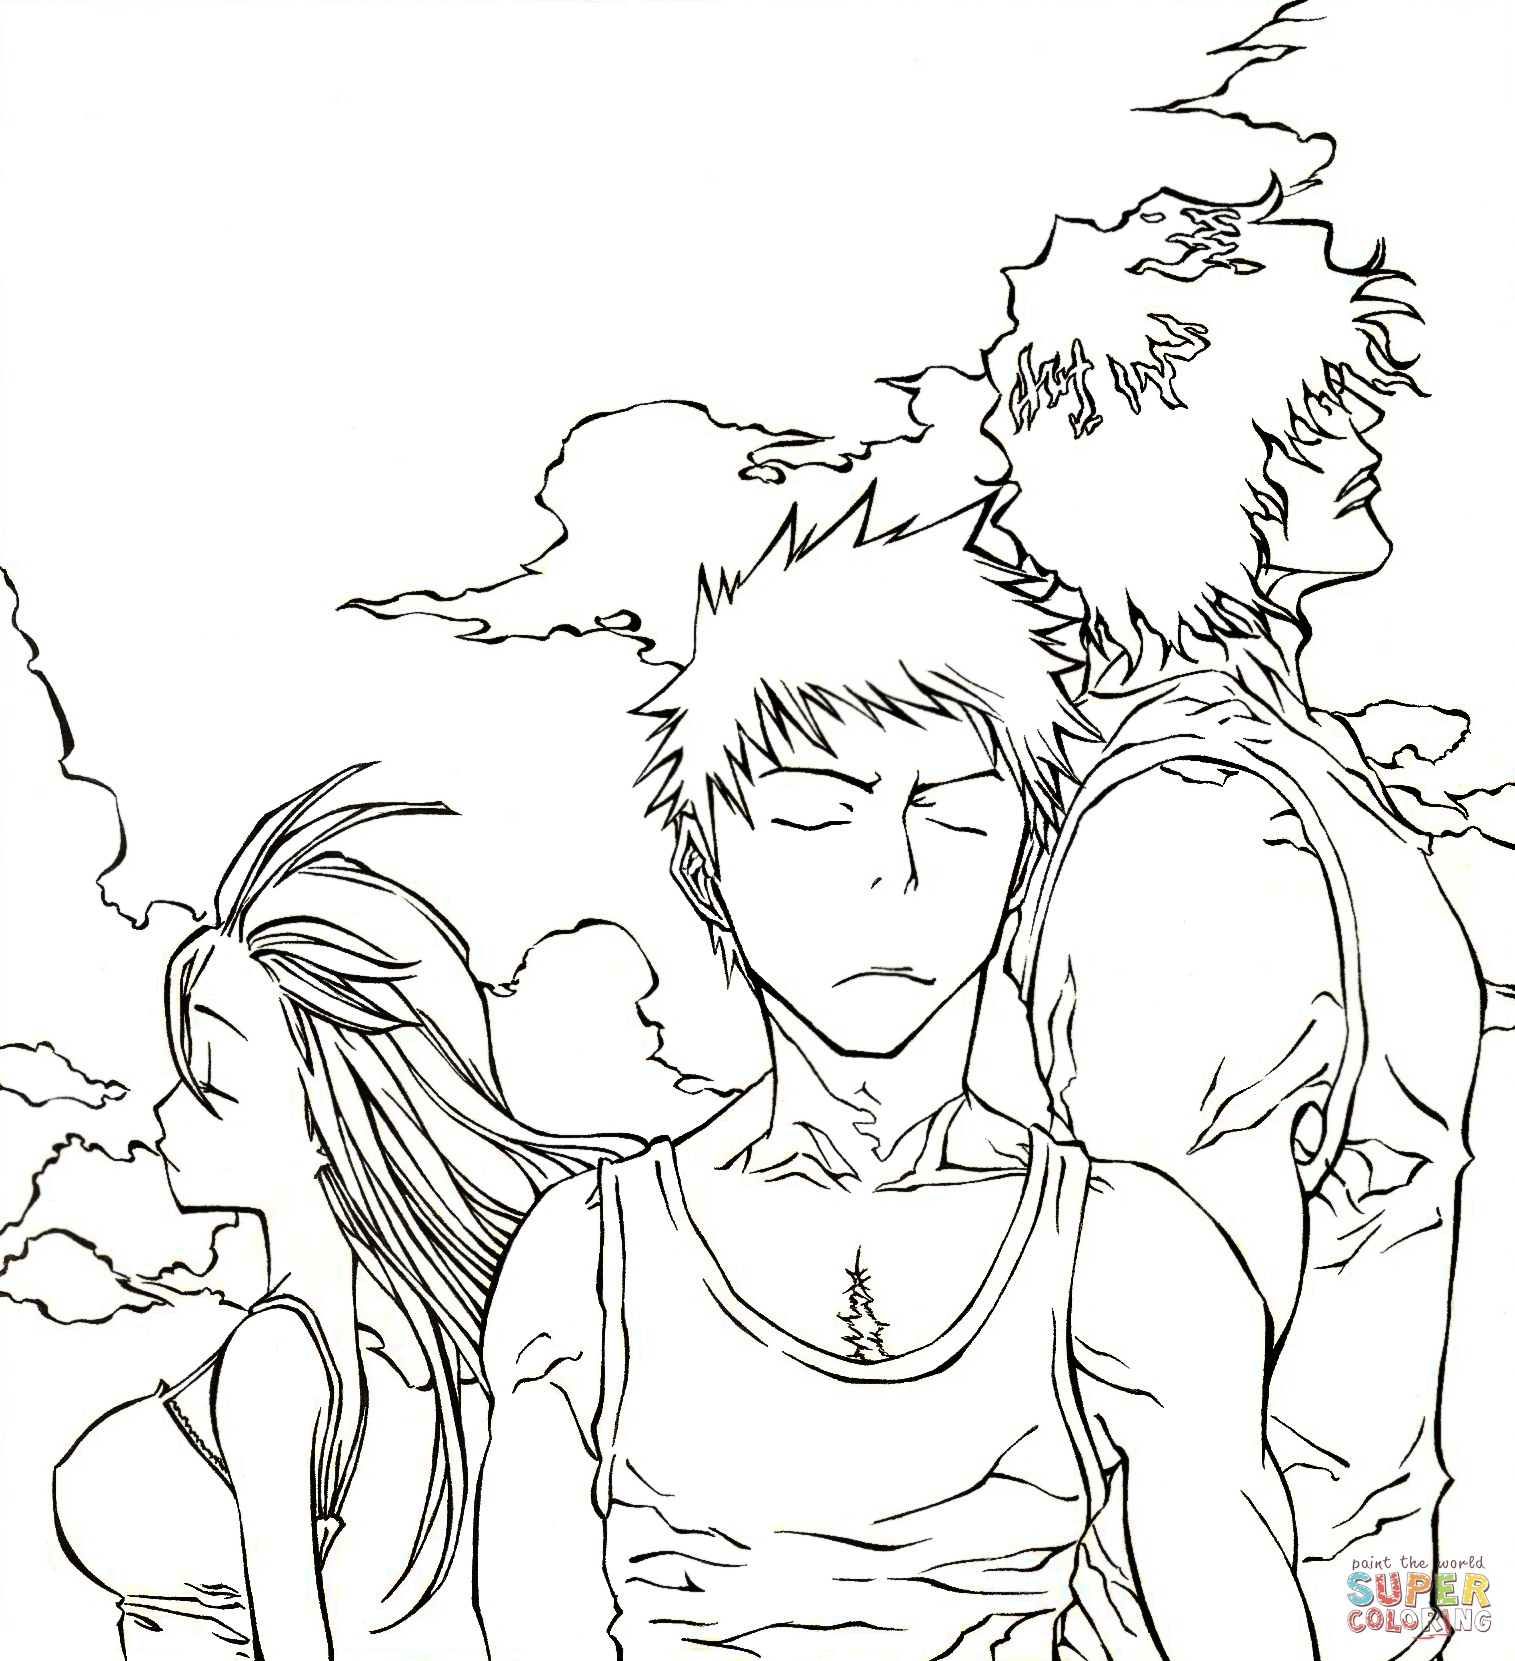 Dragon Ball Z coloring pages | Print and Color.com | 1661x1515